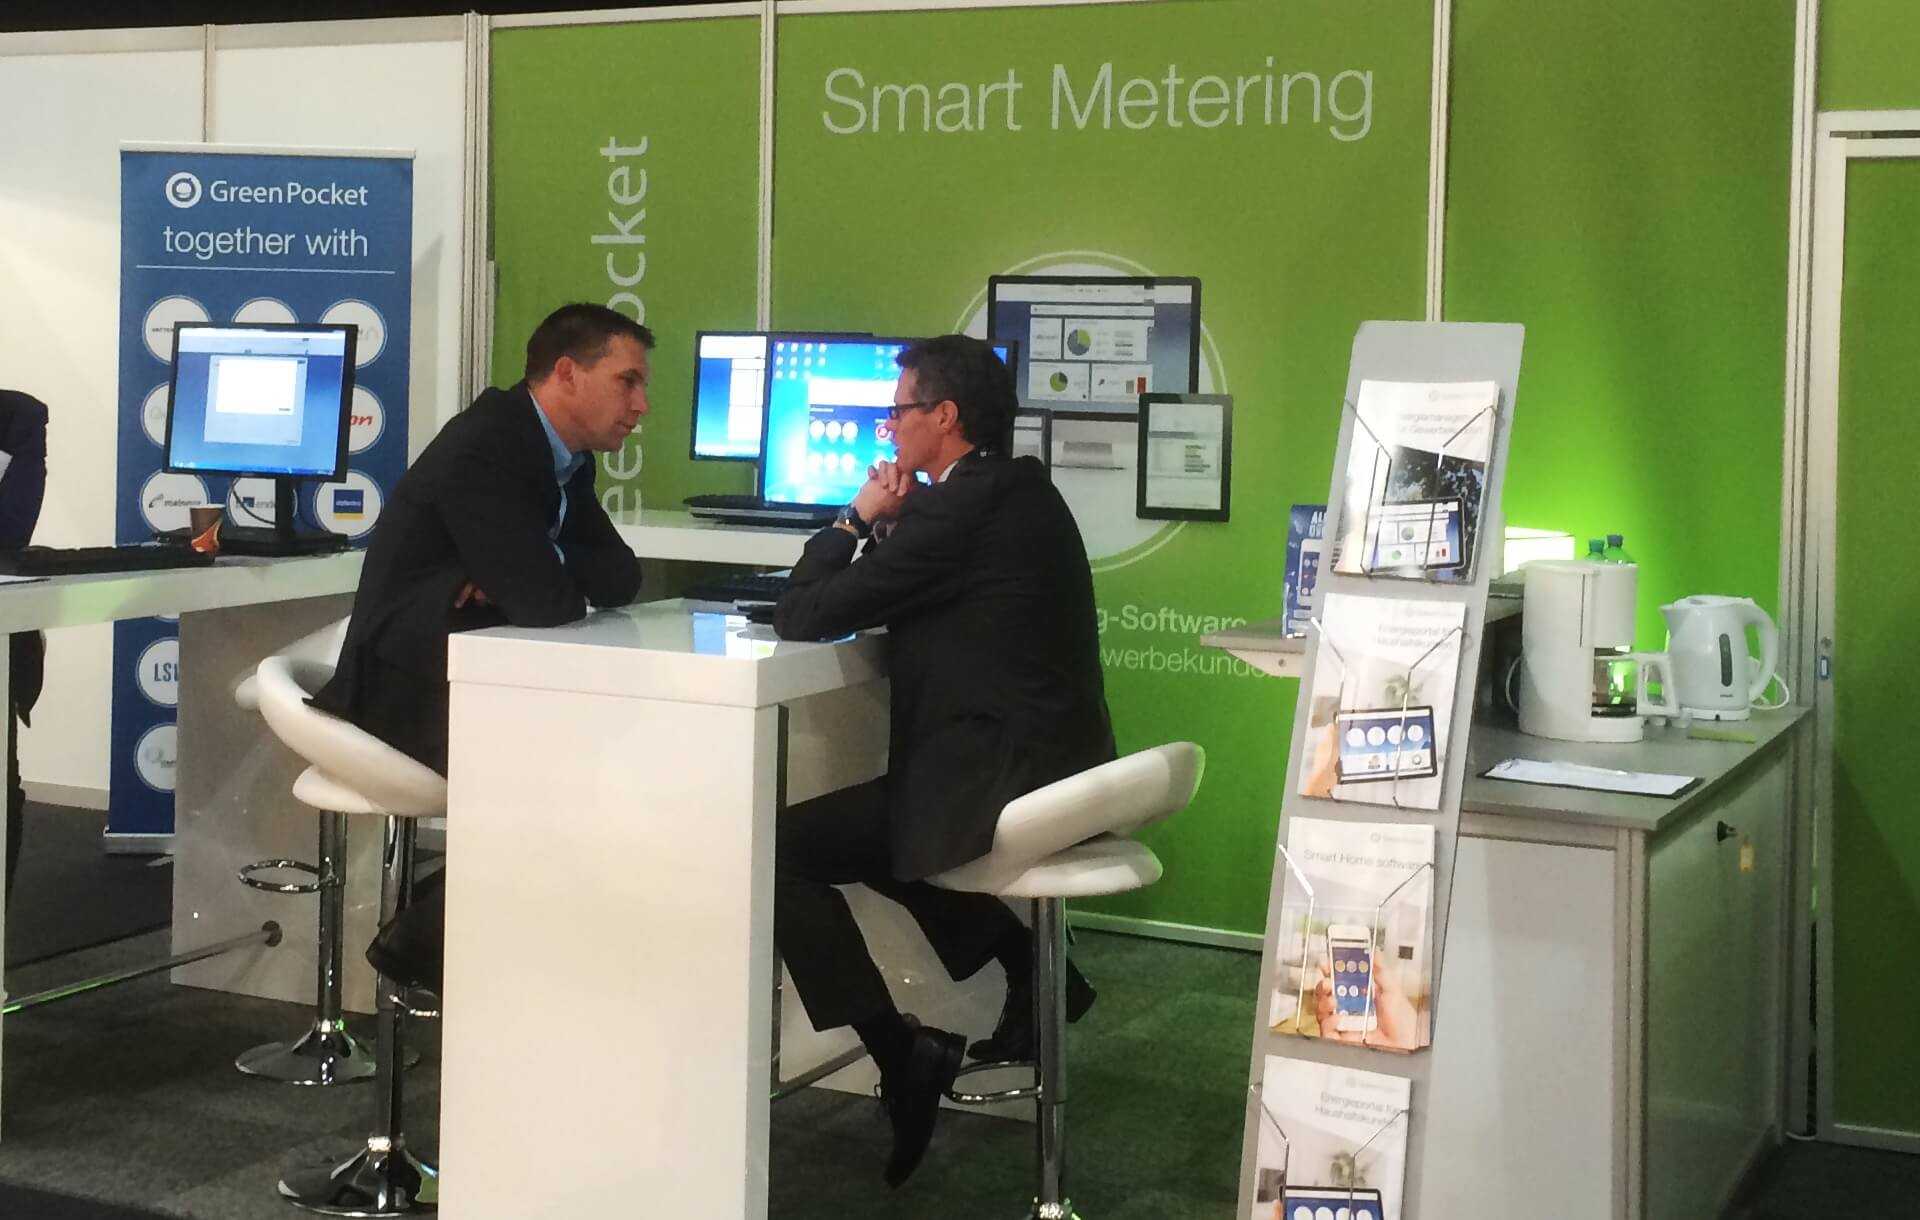 At the European Utility Week 2015